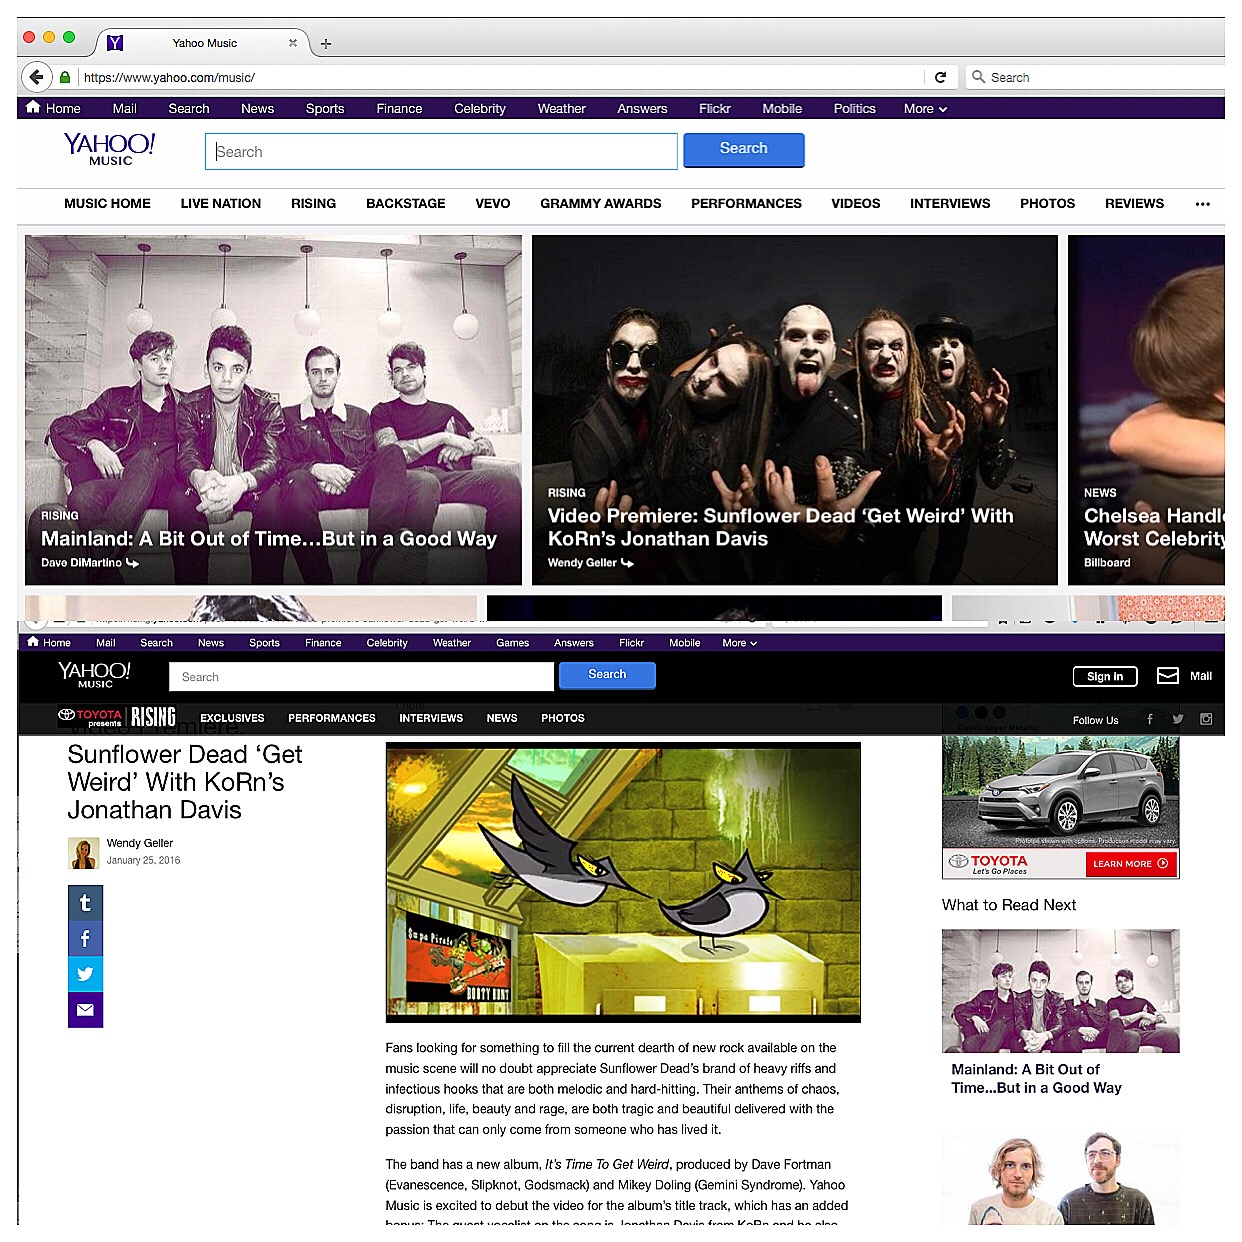 Yahoo Music features SPBH